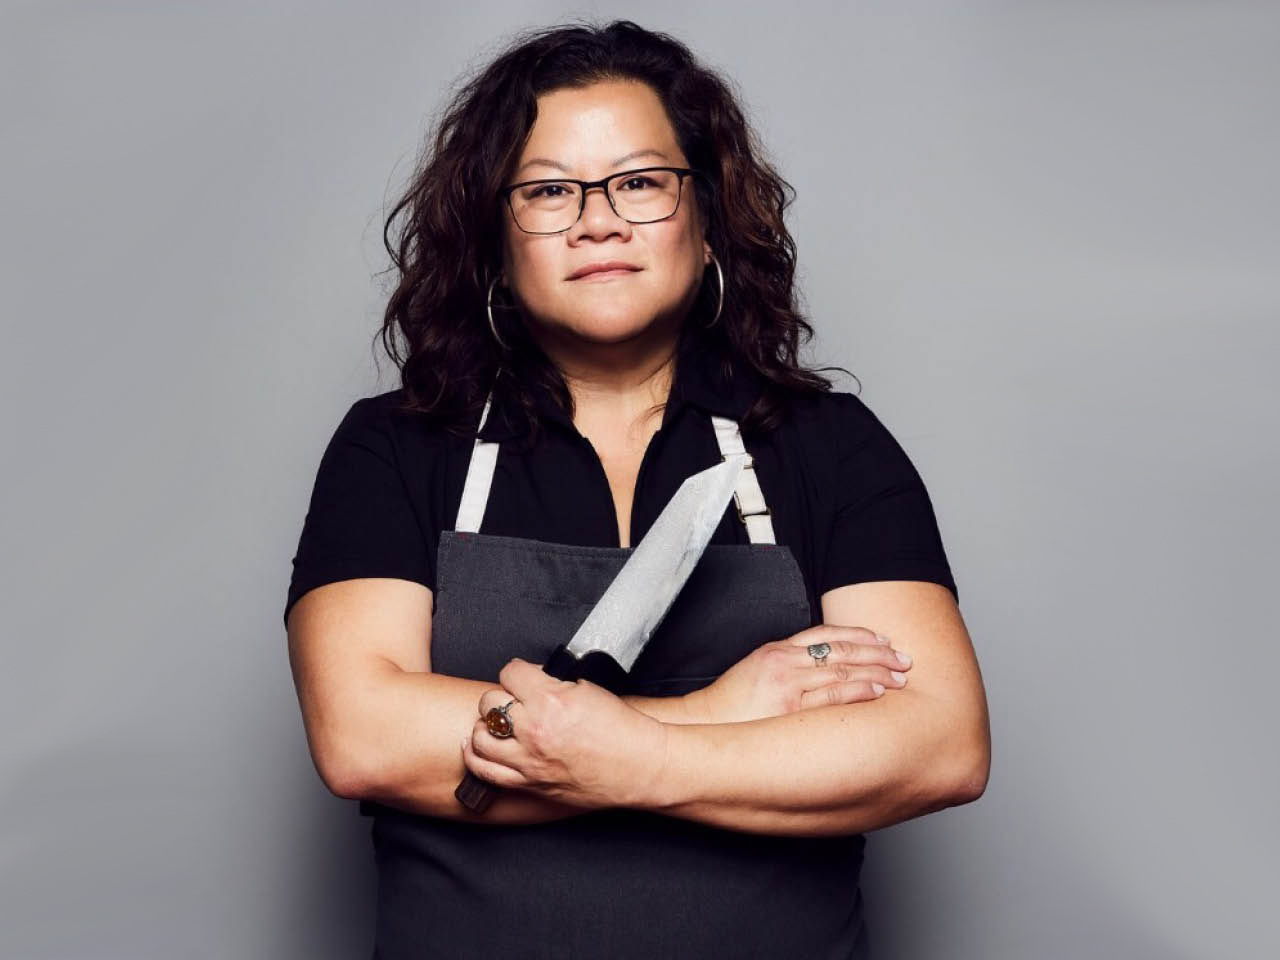 Canadian Chefs-Nicole Gomes is one tough cookie who runs her own catering company and rotisserie in Calgary, Alberta